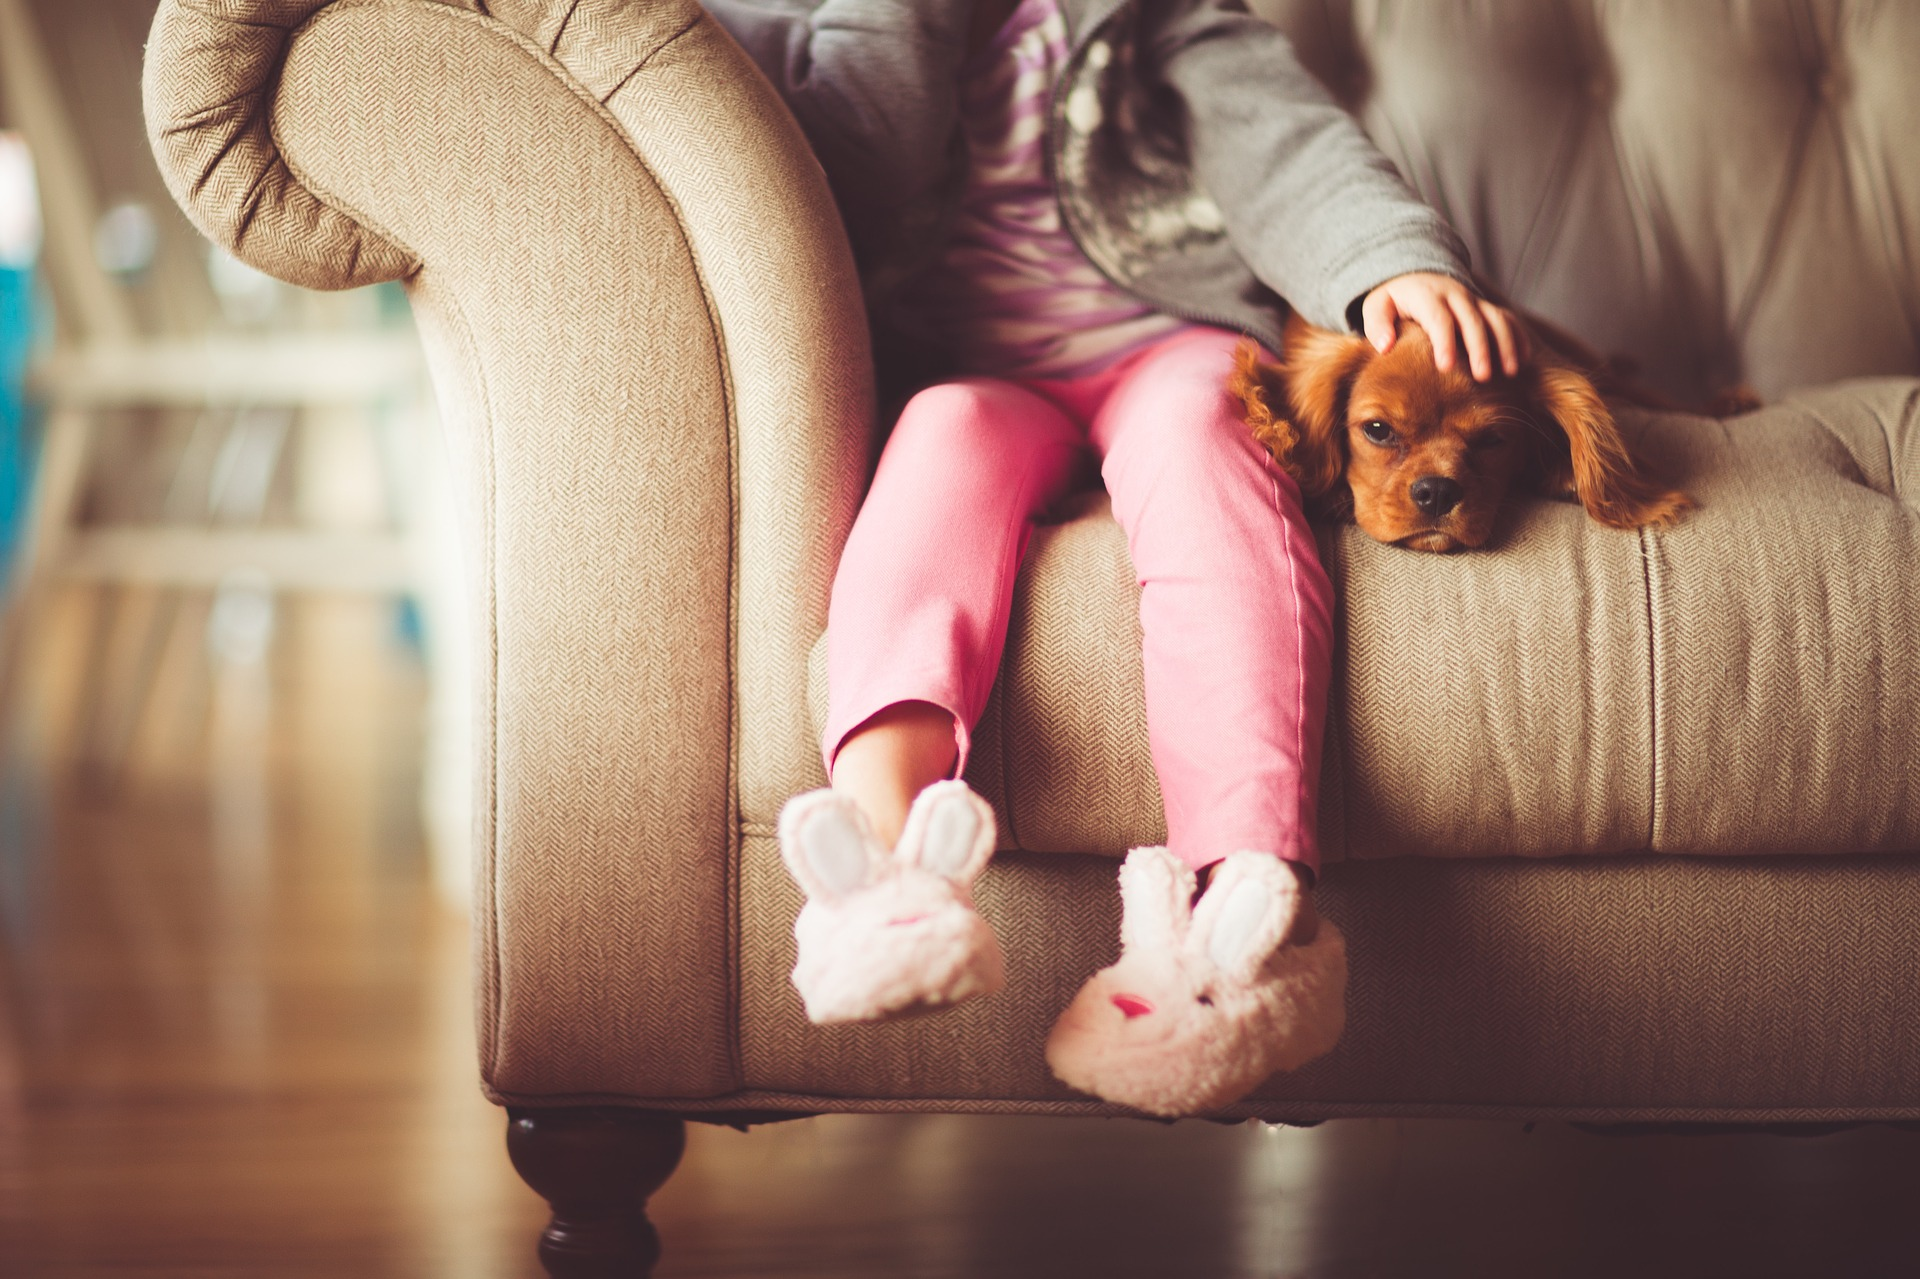 Young girl sitting on couch with small puppy